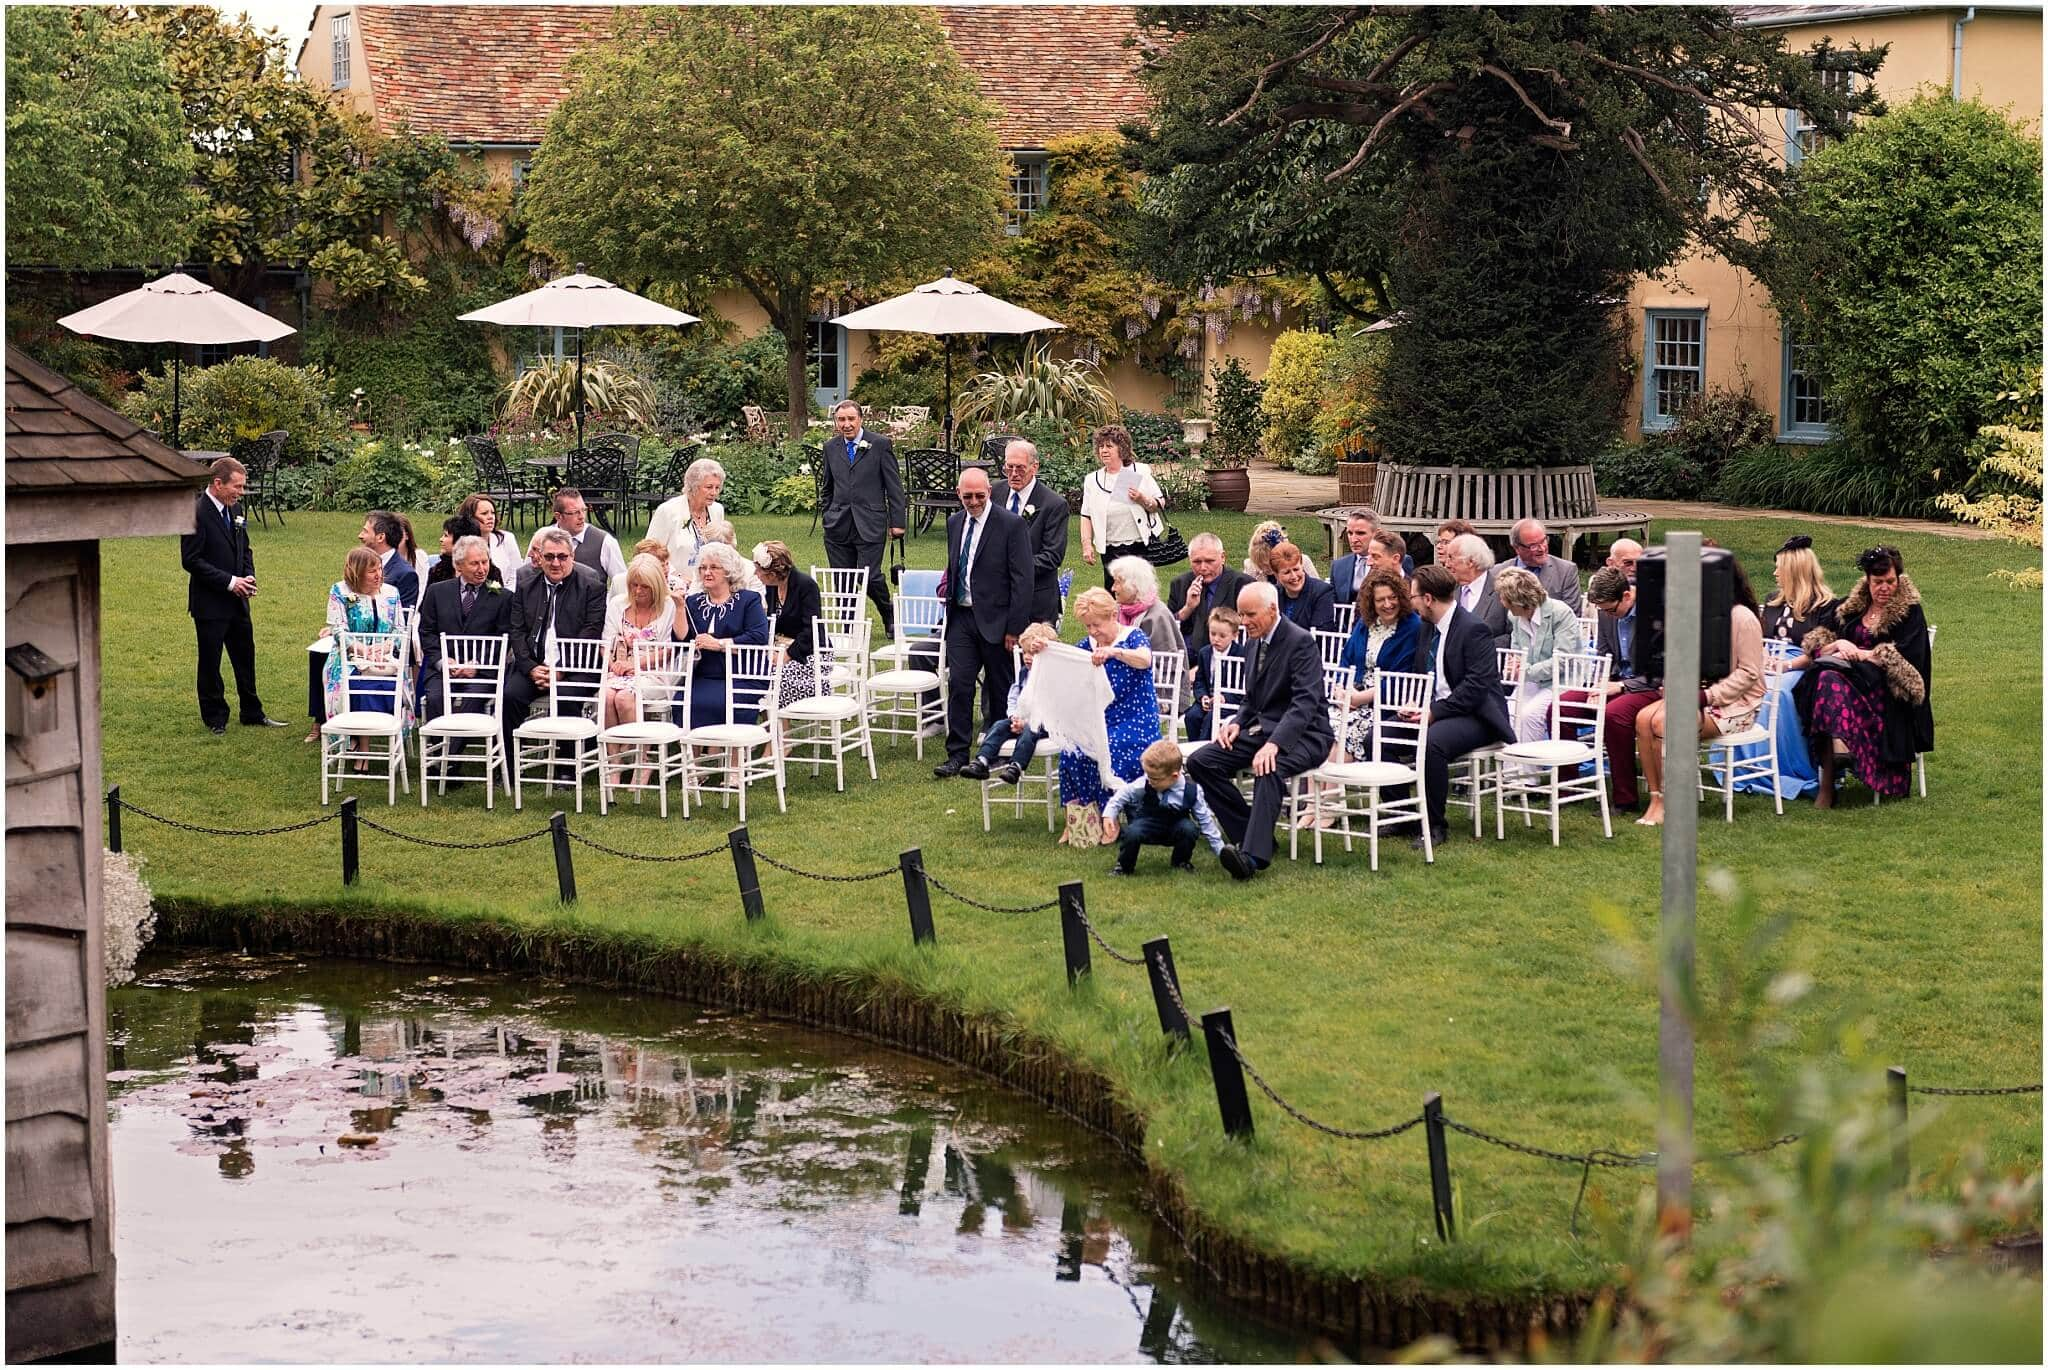 Outside ceremony seating for guests